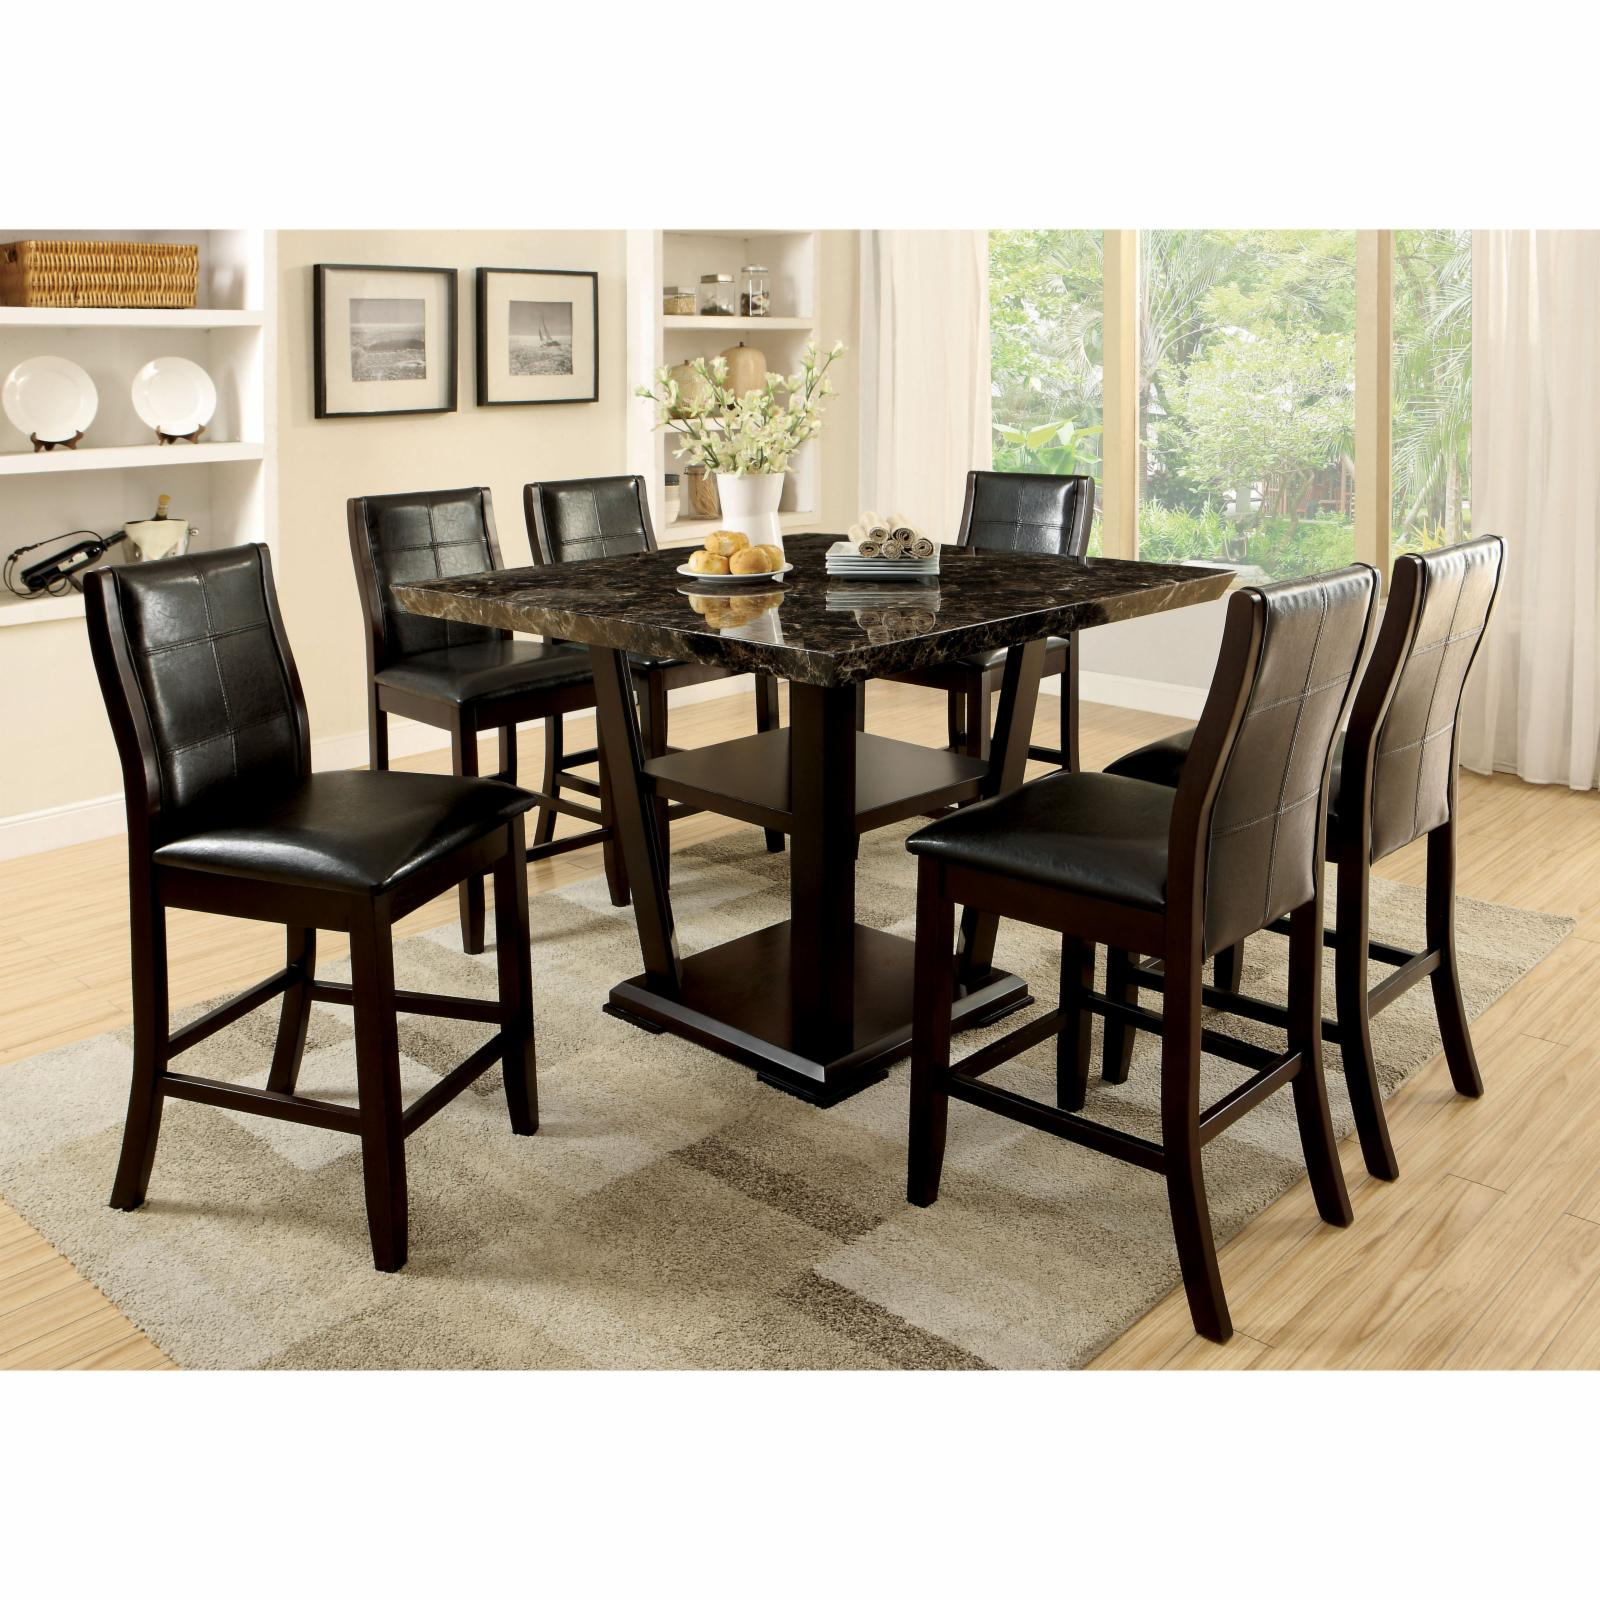 Furniture of America Newrock 7 Piece Counter Height Faux ...